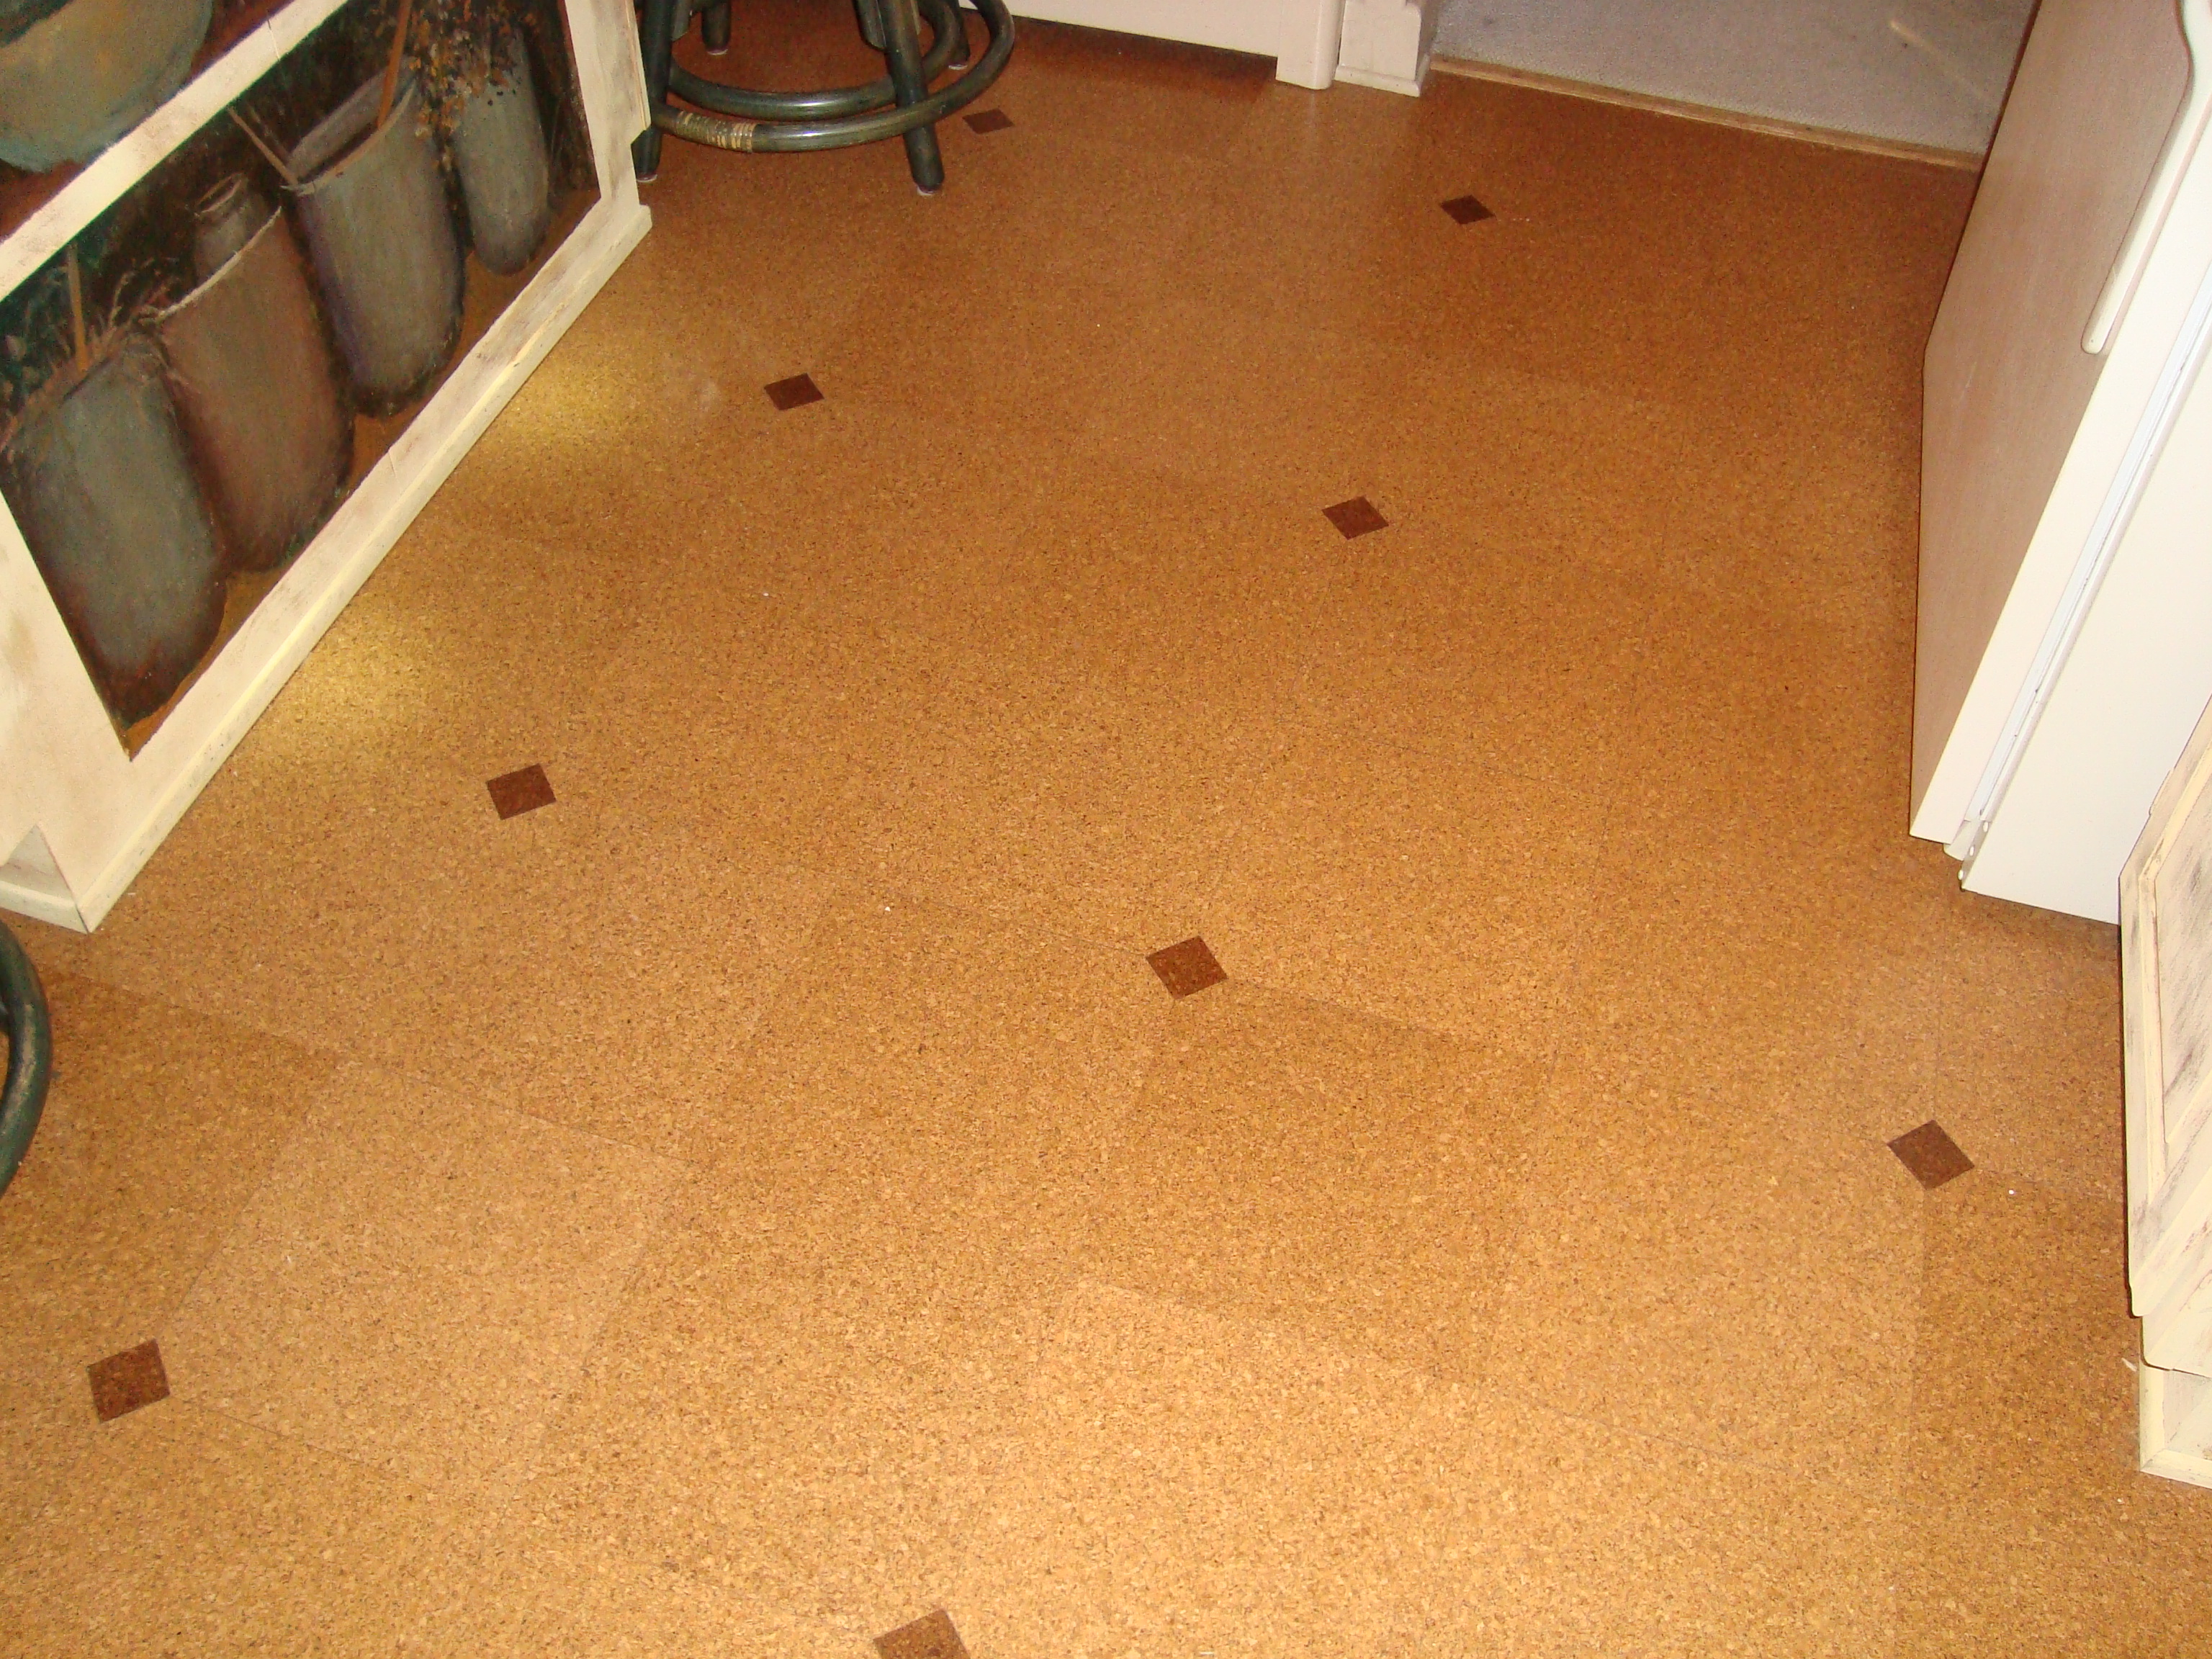 tiles design lisbon for cork liquidators the lumber a of then floating blog floor home floors homebodies from wanderlust installation at with flooring vibrant away dali